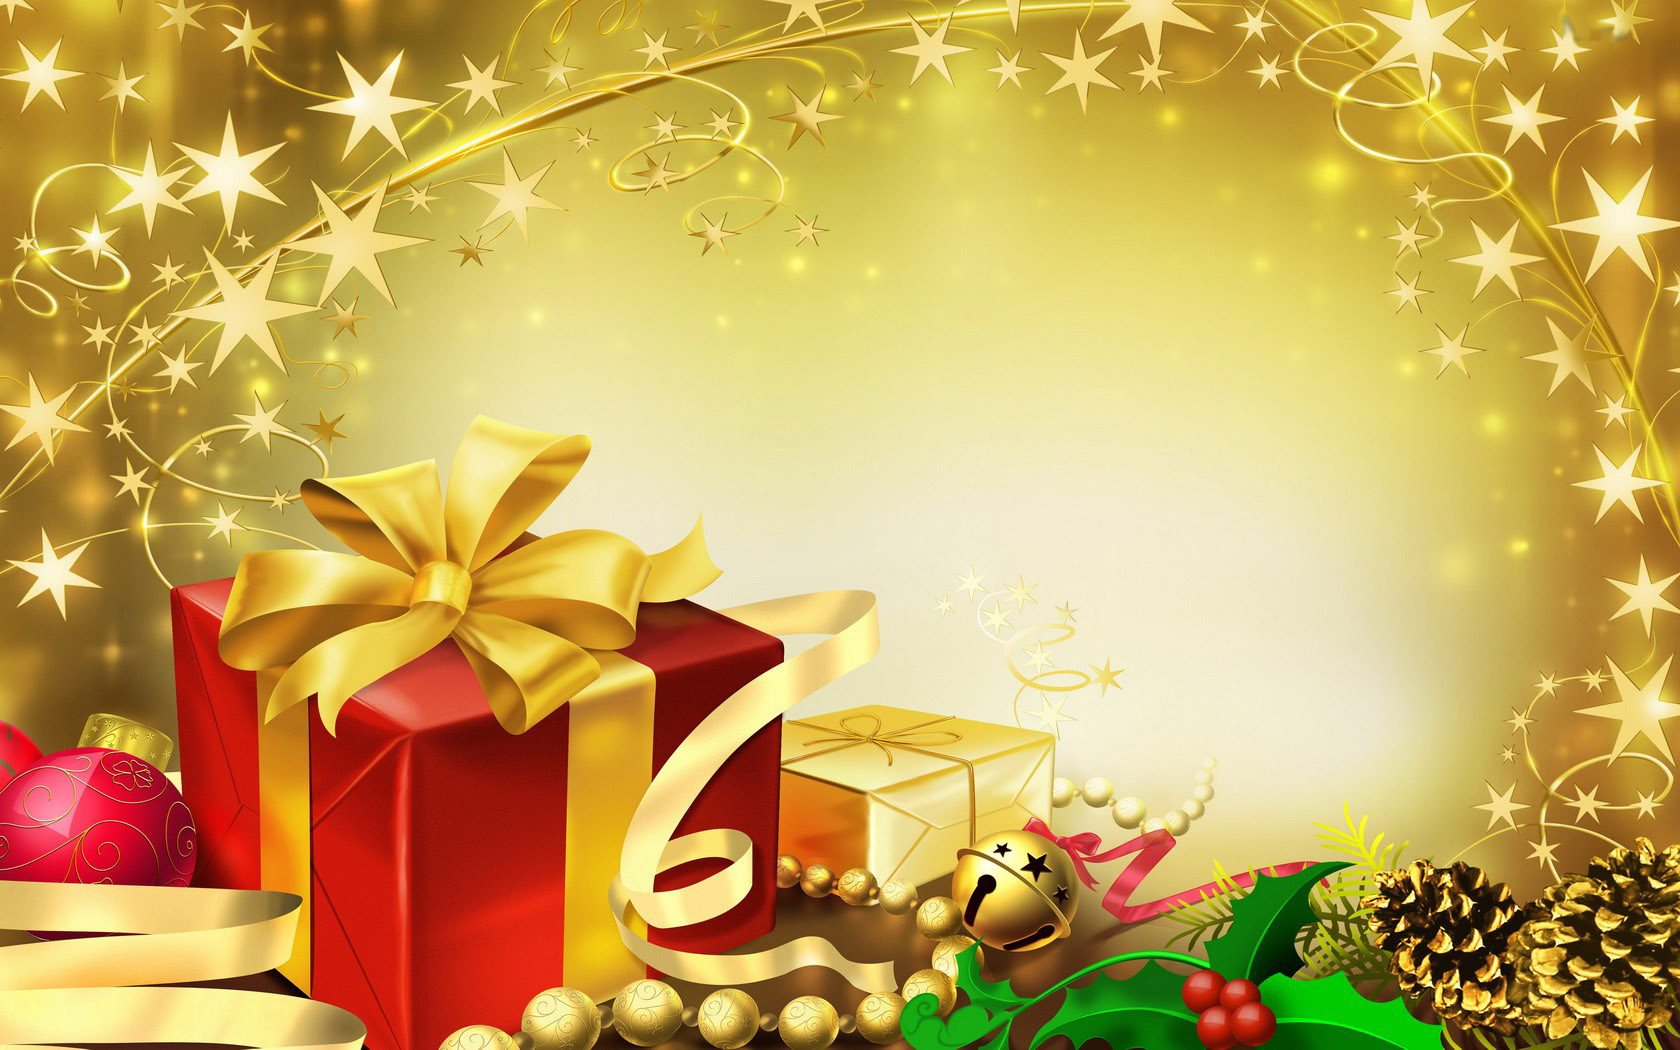 Happy Birthday Wallpaper With Quotes Christmas Wallpaper Holiday Greeting Stuffs Holiday